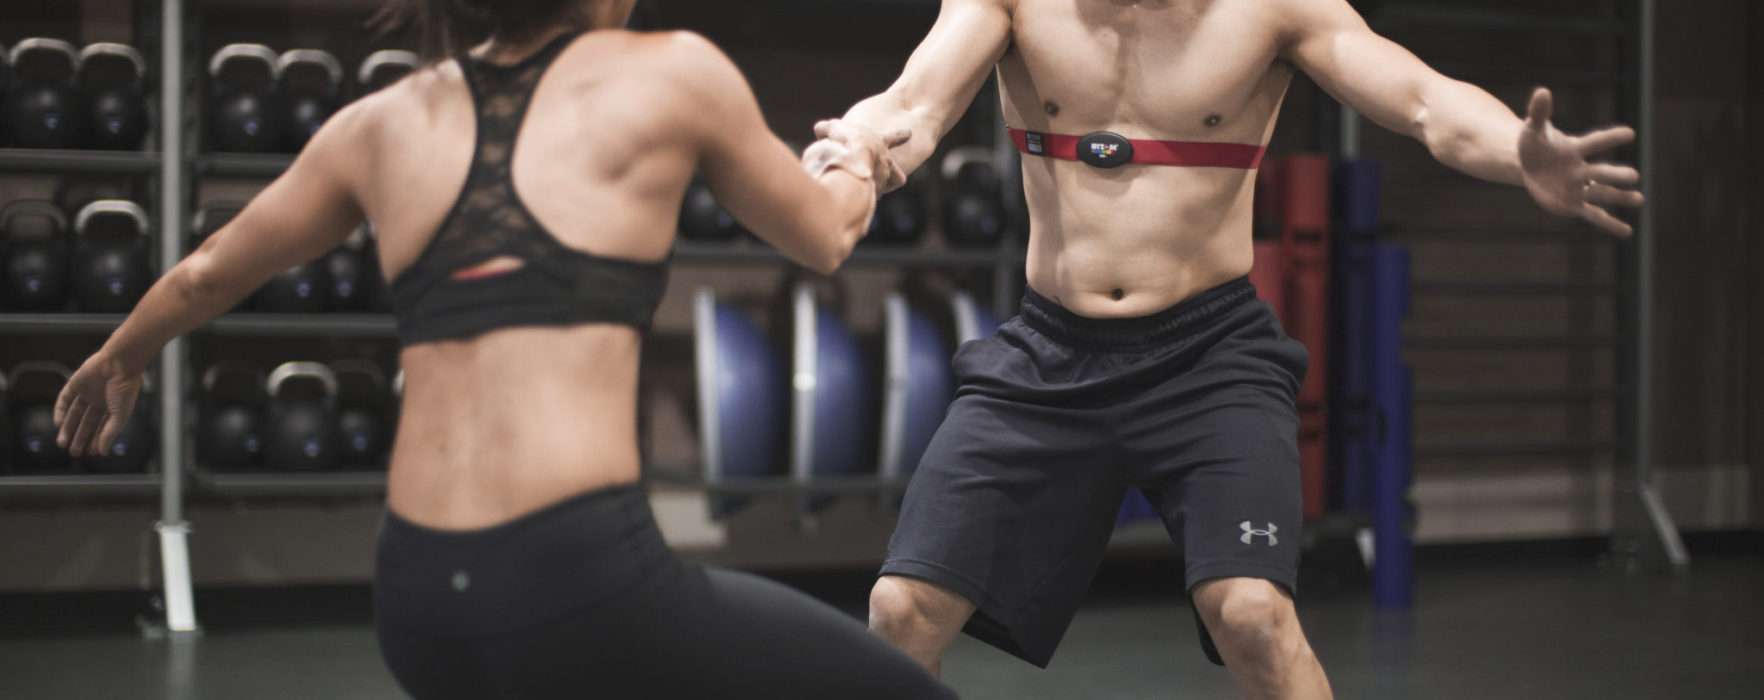 Work out smarter by unleashing the power of wearable technology